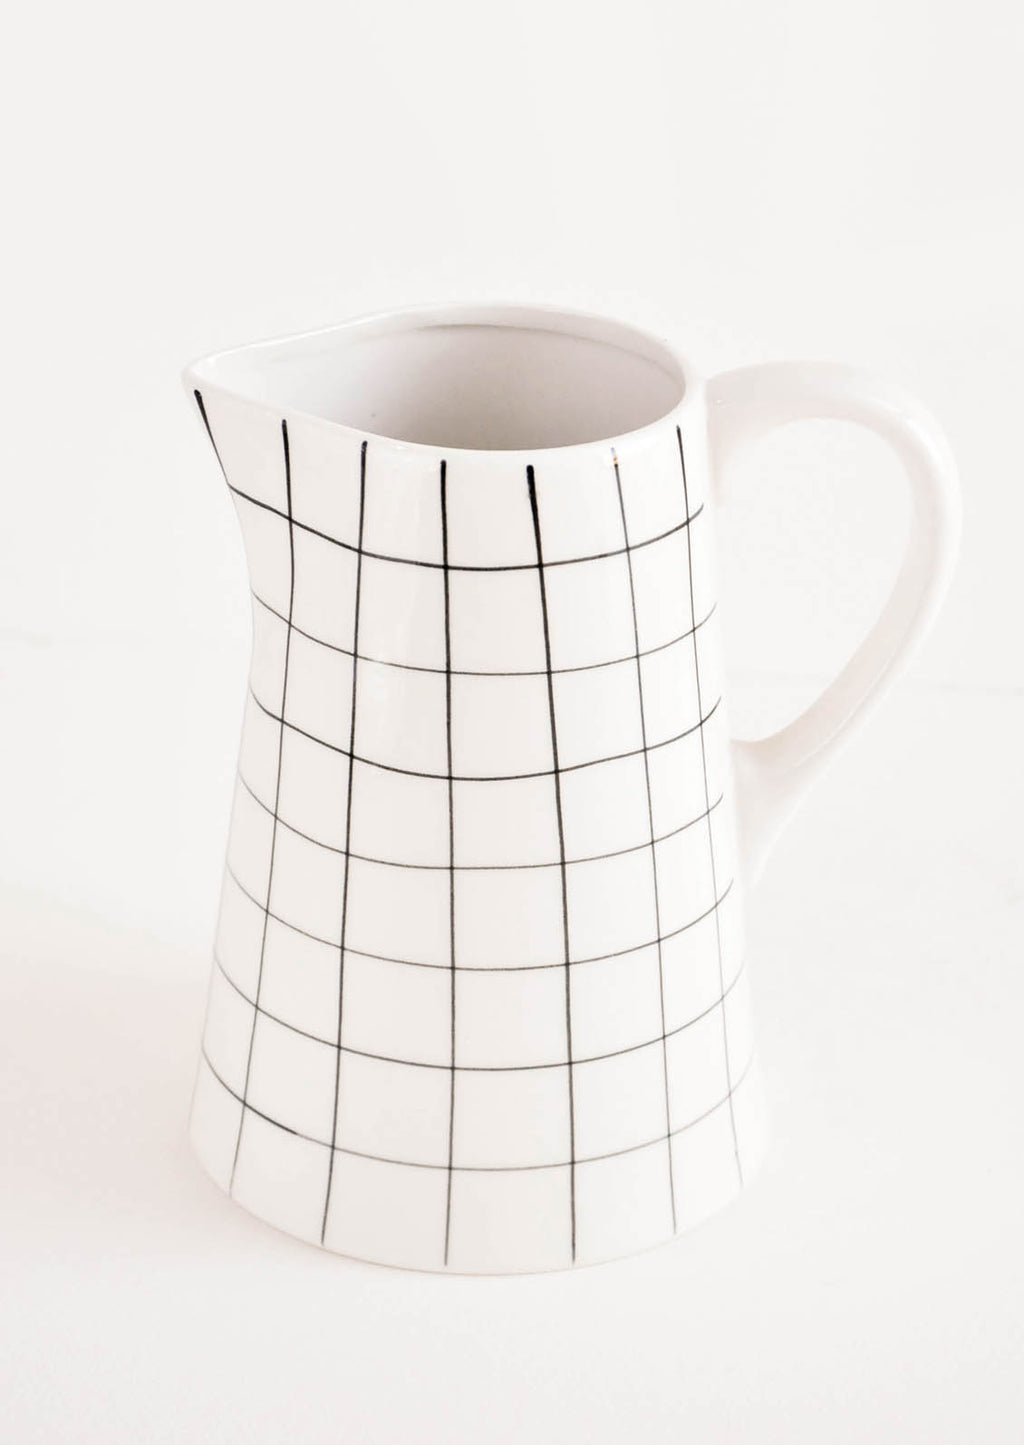 1: Grid Print Ceramic Pitcher in White & Black - LEIF